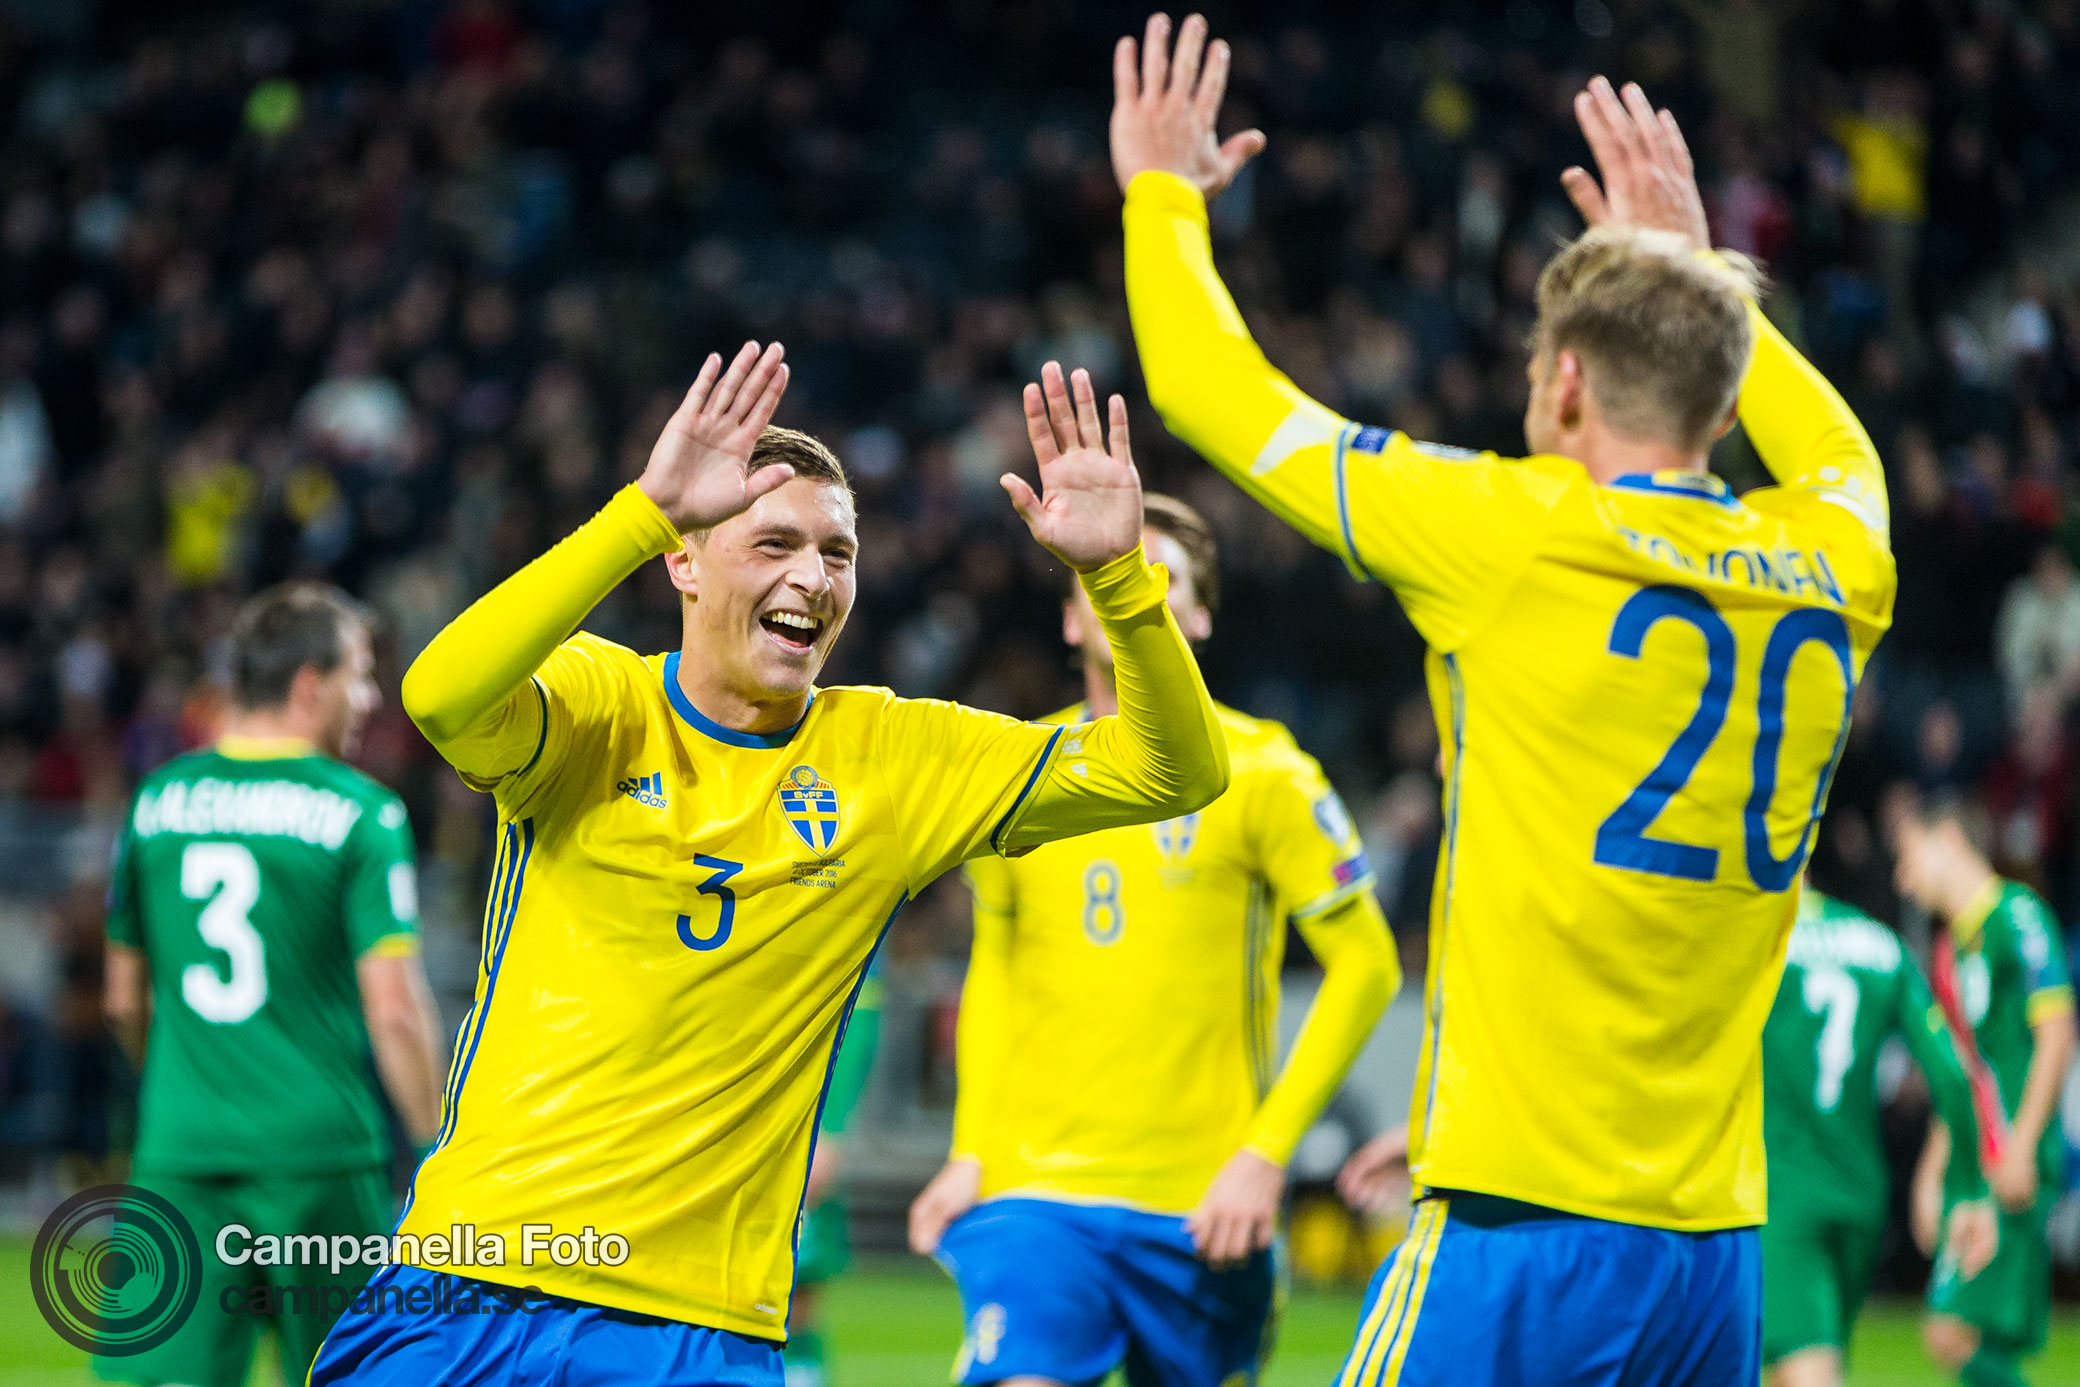 Sweden easily crushes Bulgaria - Michael Campanella Photography